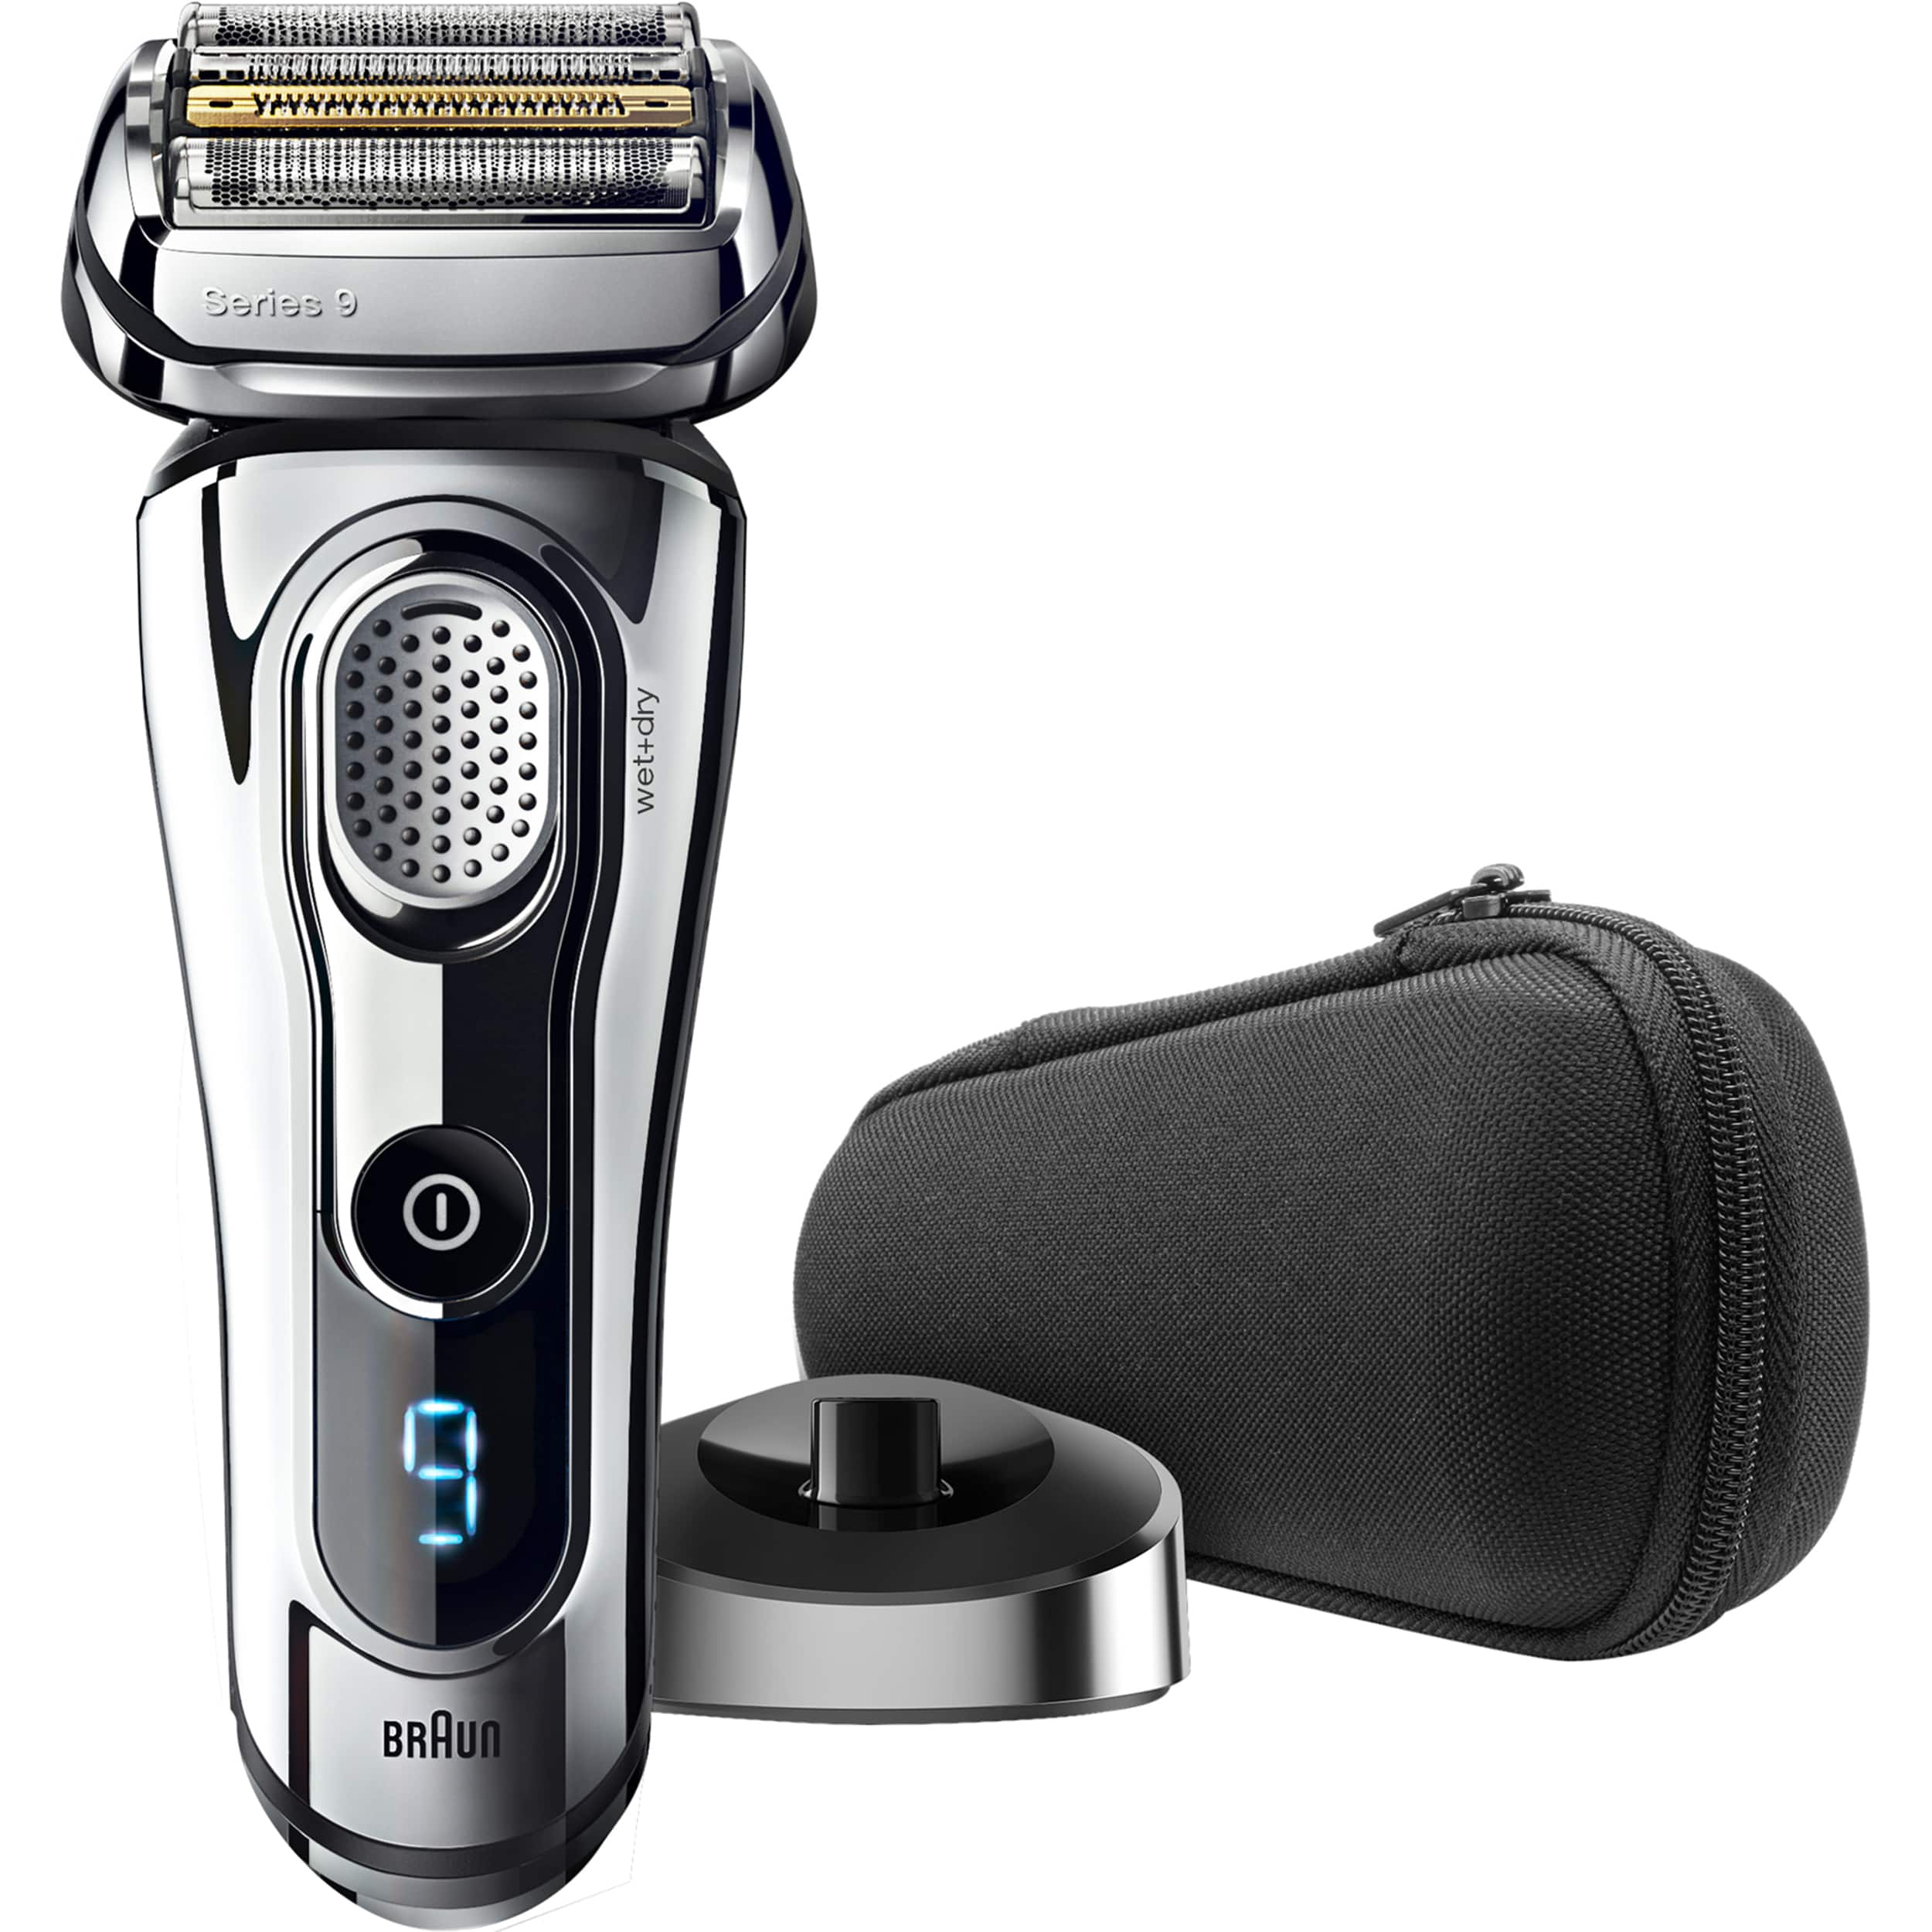 Beauty Braun Series 9 9293s Men's Electric Foil Shaver, Wet and Dry Razor with Charging Stand and Travel case -$139.94